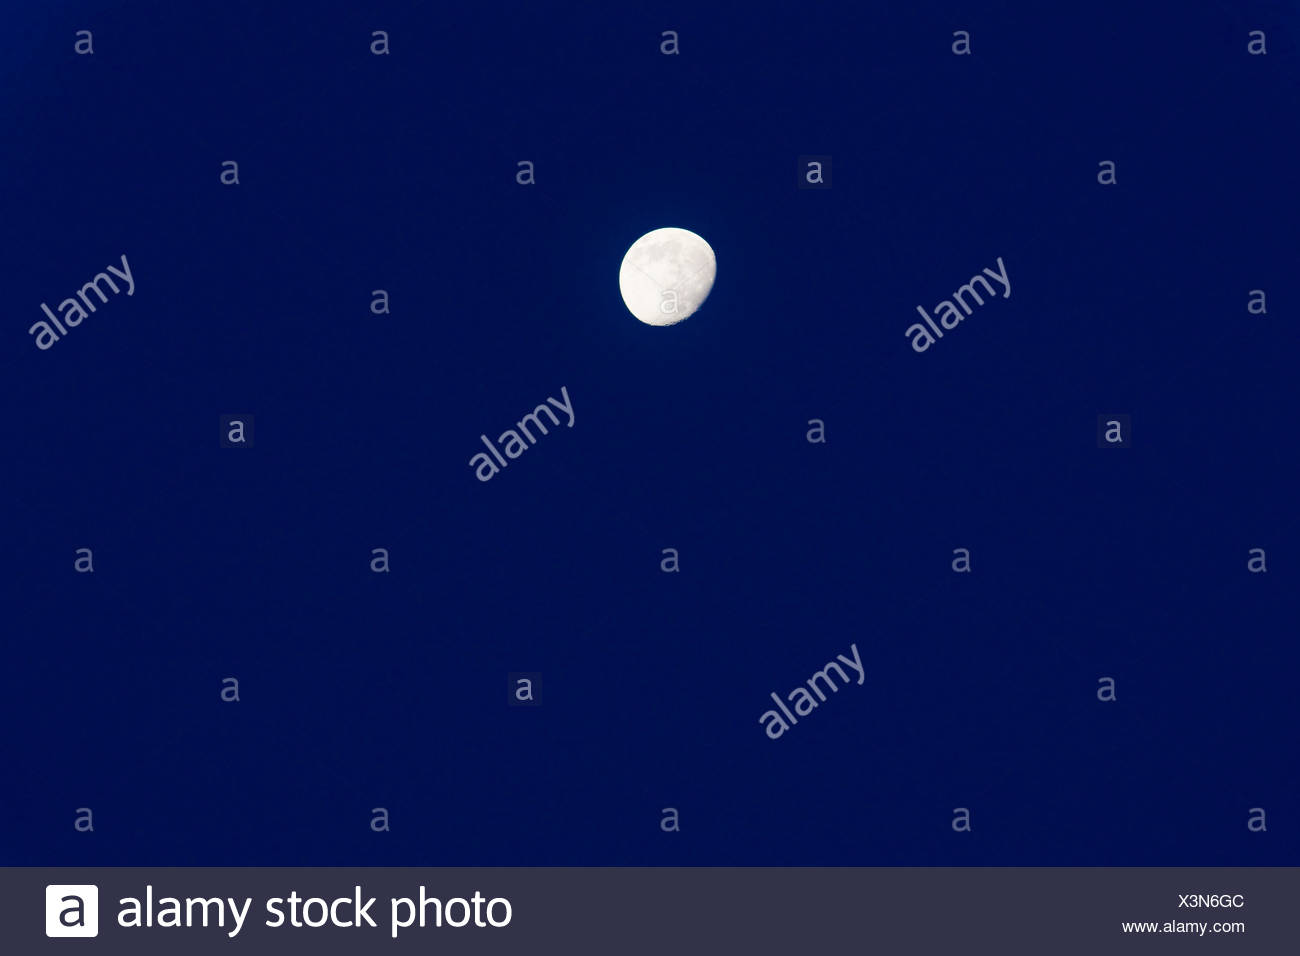 night nighttime moon evening outdoor outside dark backgrounds exterior firmament sky backdrop background outdoors nature - Stock Image